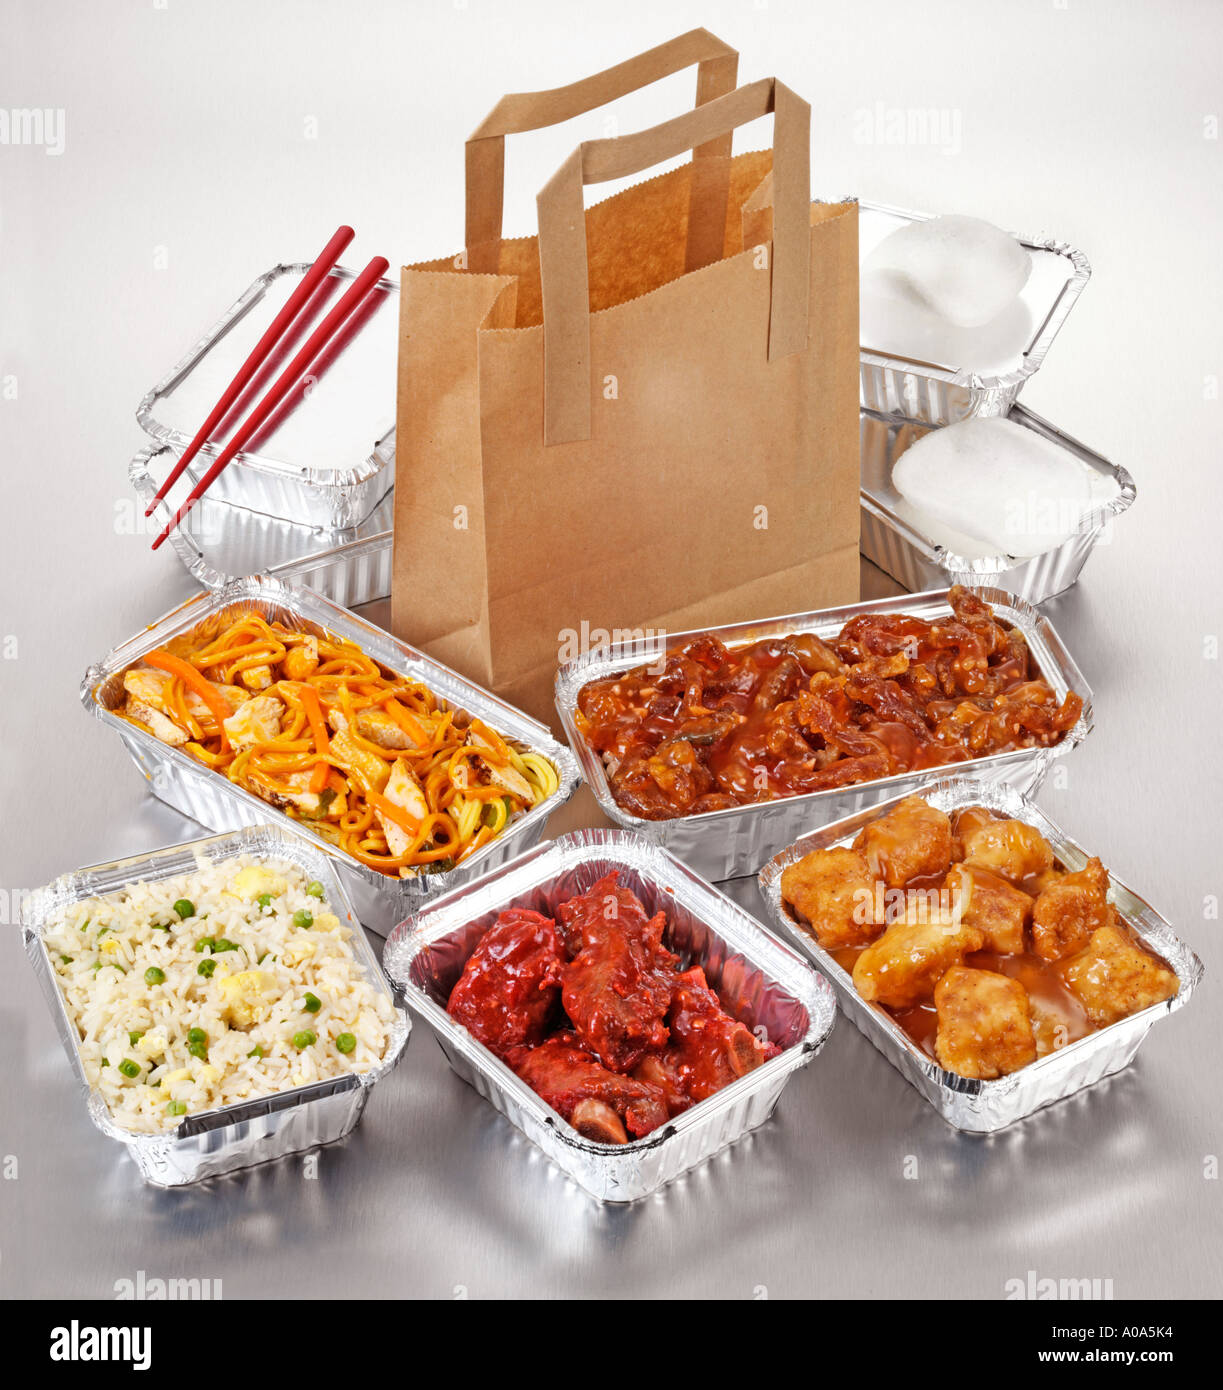 Chinese Takeaway Chinese Food Take Away Selection Stock Photo 5674483 Alamy